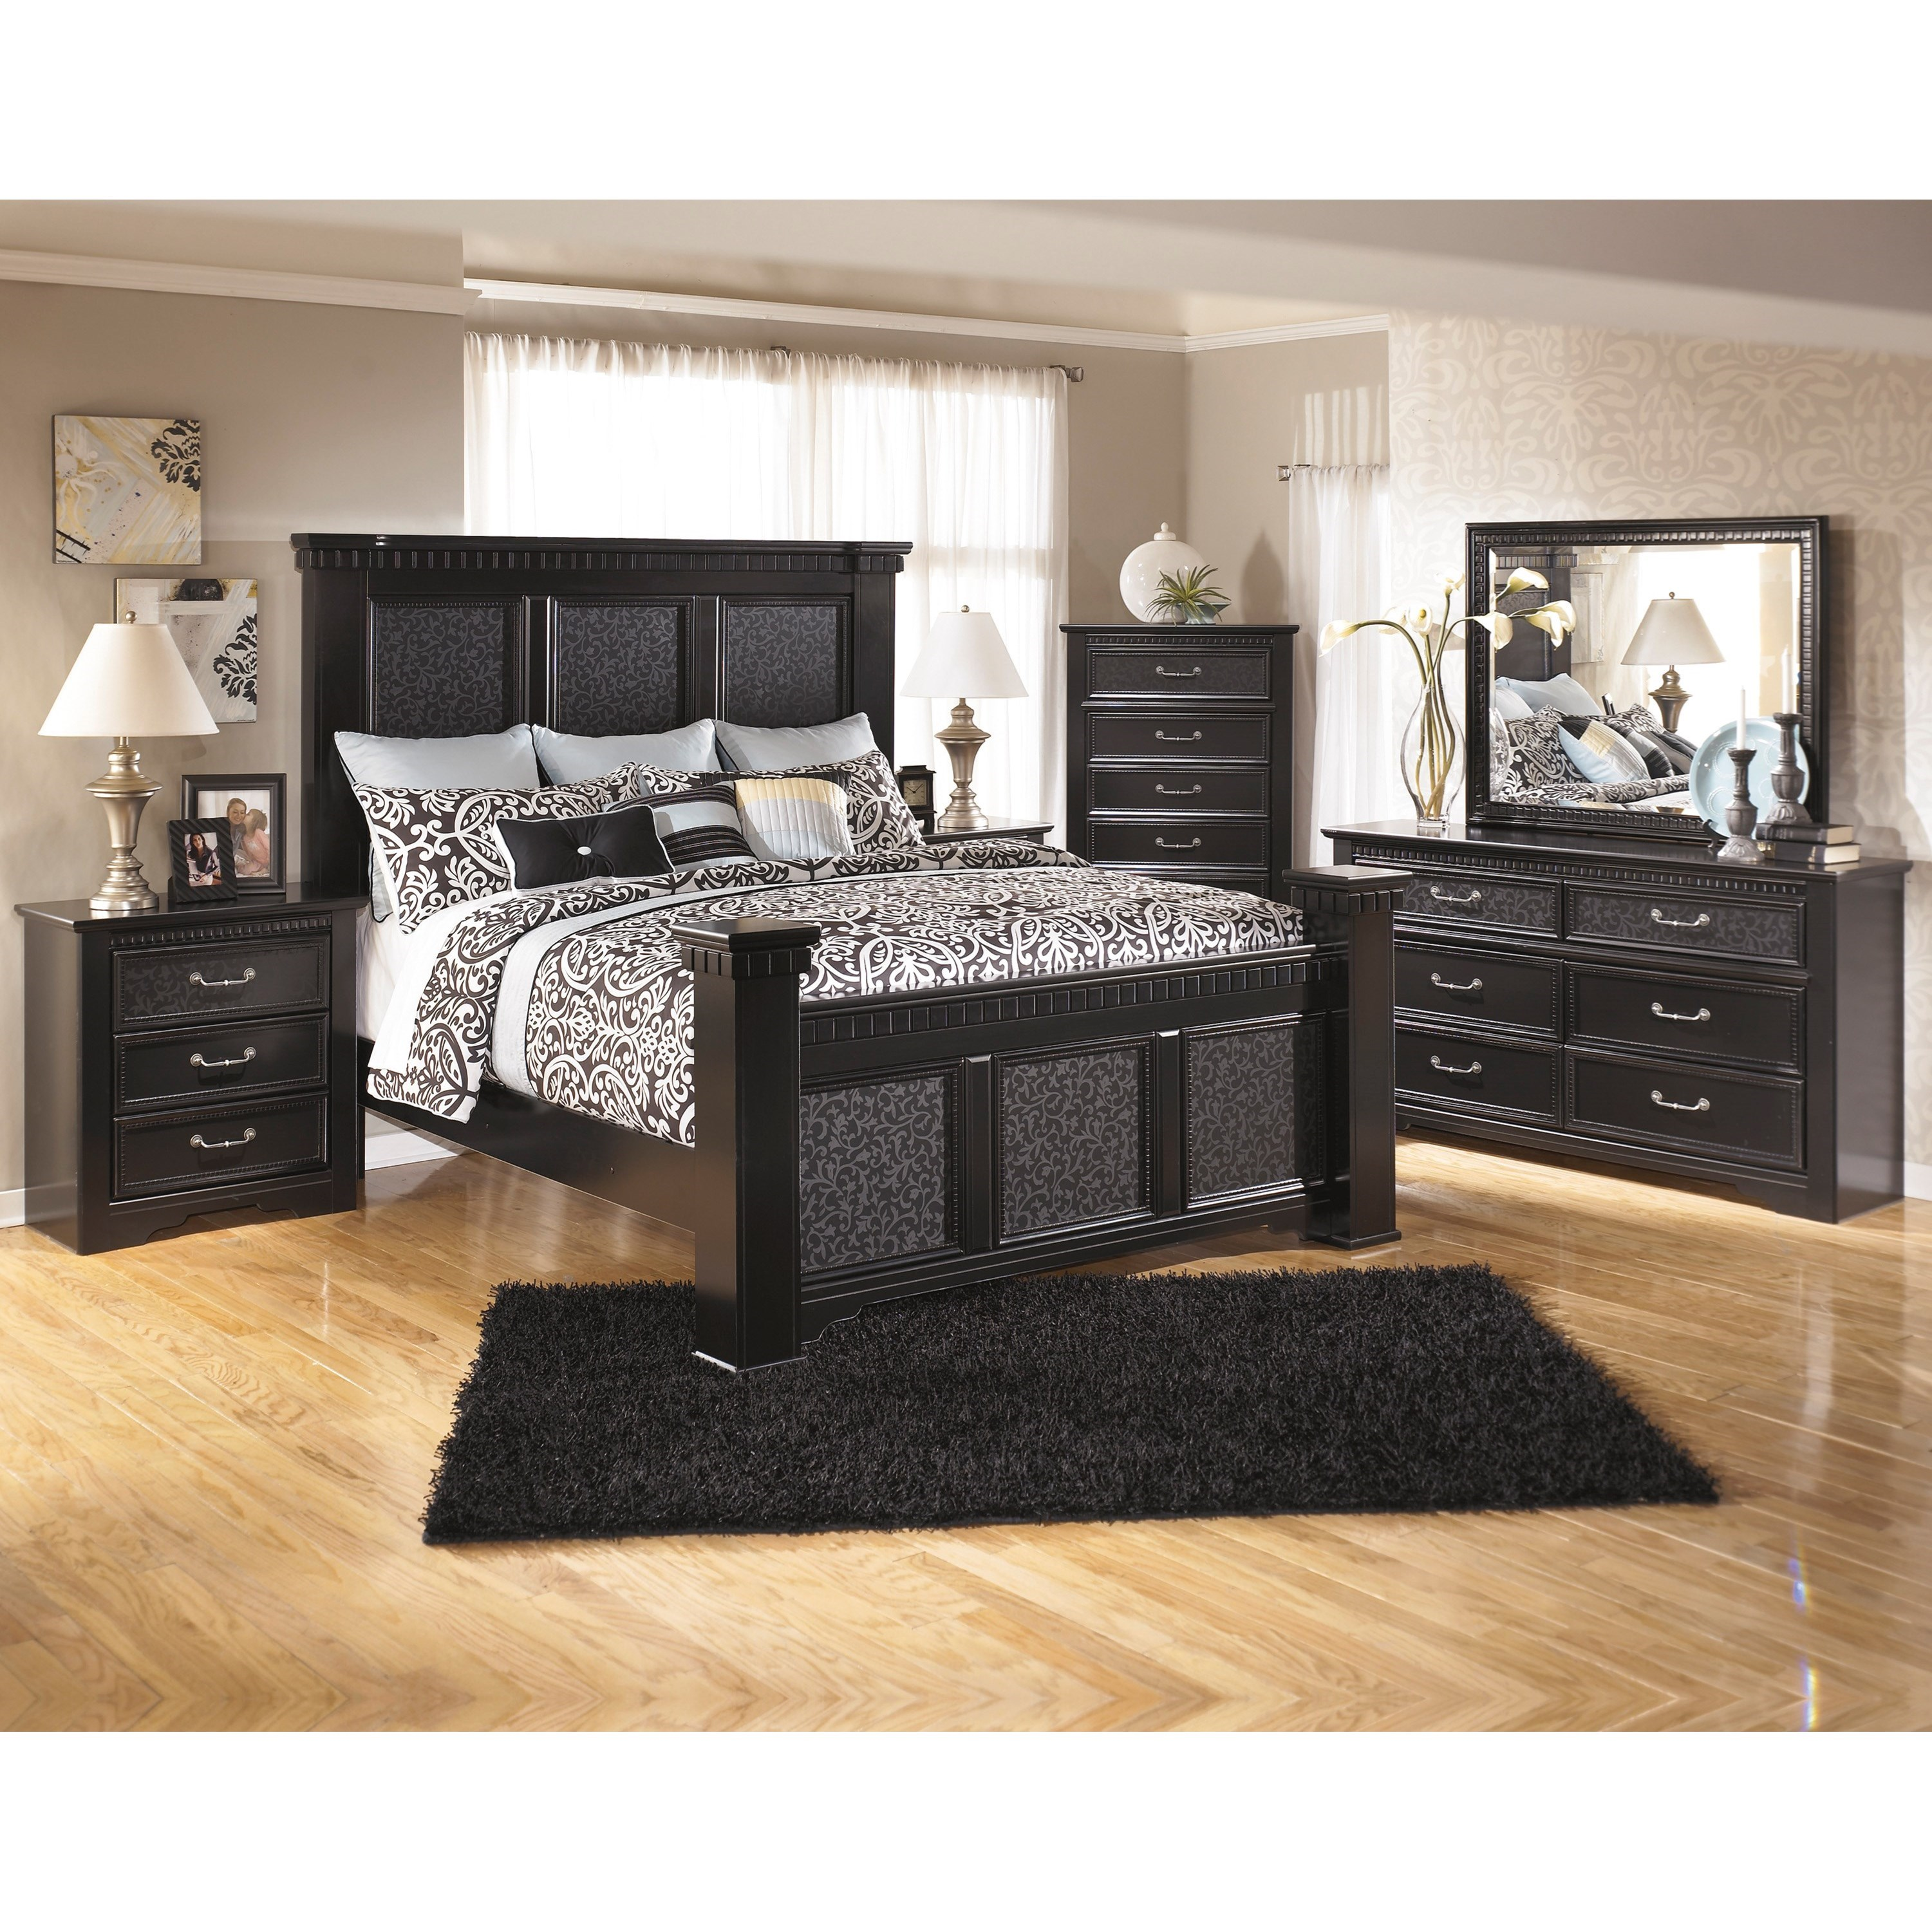 Signature Design by Ashley Cavallino California King Bedroom Group - Item Number: B291 CK Bedroom Group 3